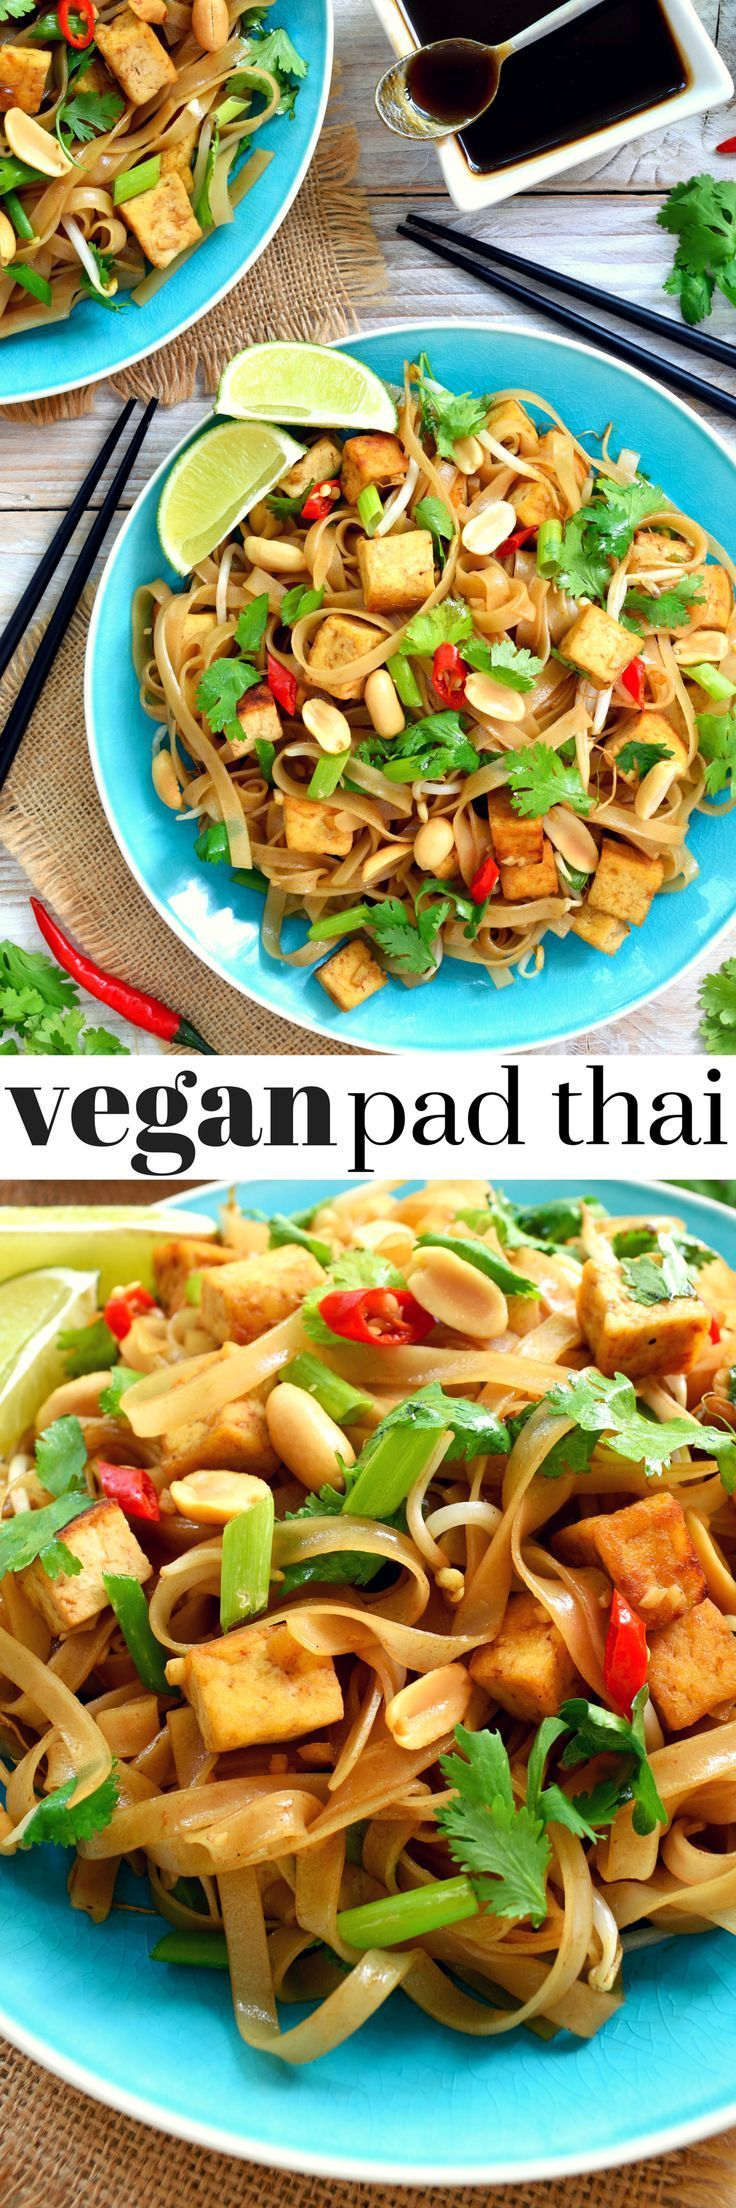 Vegan pad thai with tofu, bean sprouts and herbs. A delicious sweet, sour, savory main dish for lunch or dinner. Make your own pad thai sauce with vegan fish sauce to be sure it's totally vegetarian-friendly!